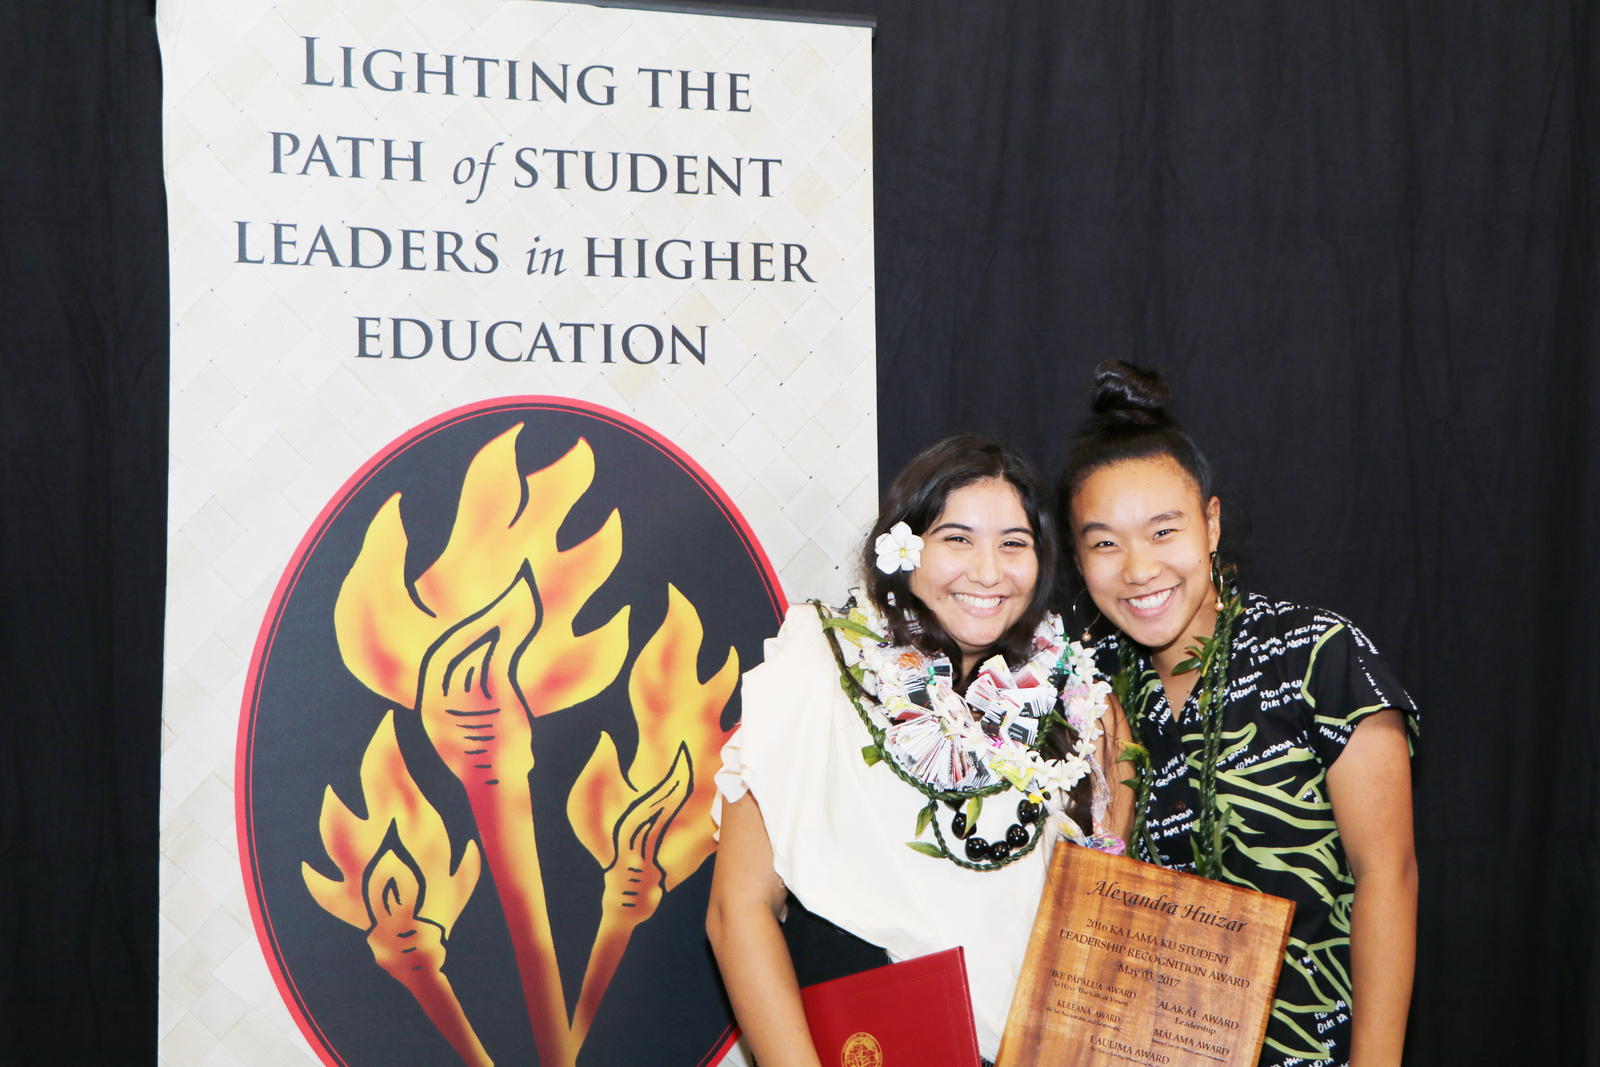 Alexandra Huizar & Megan Escalona standing in front of logo with torches